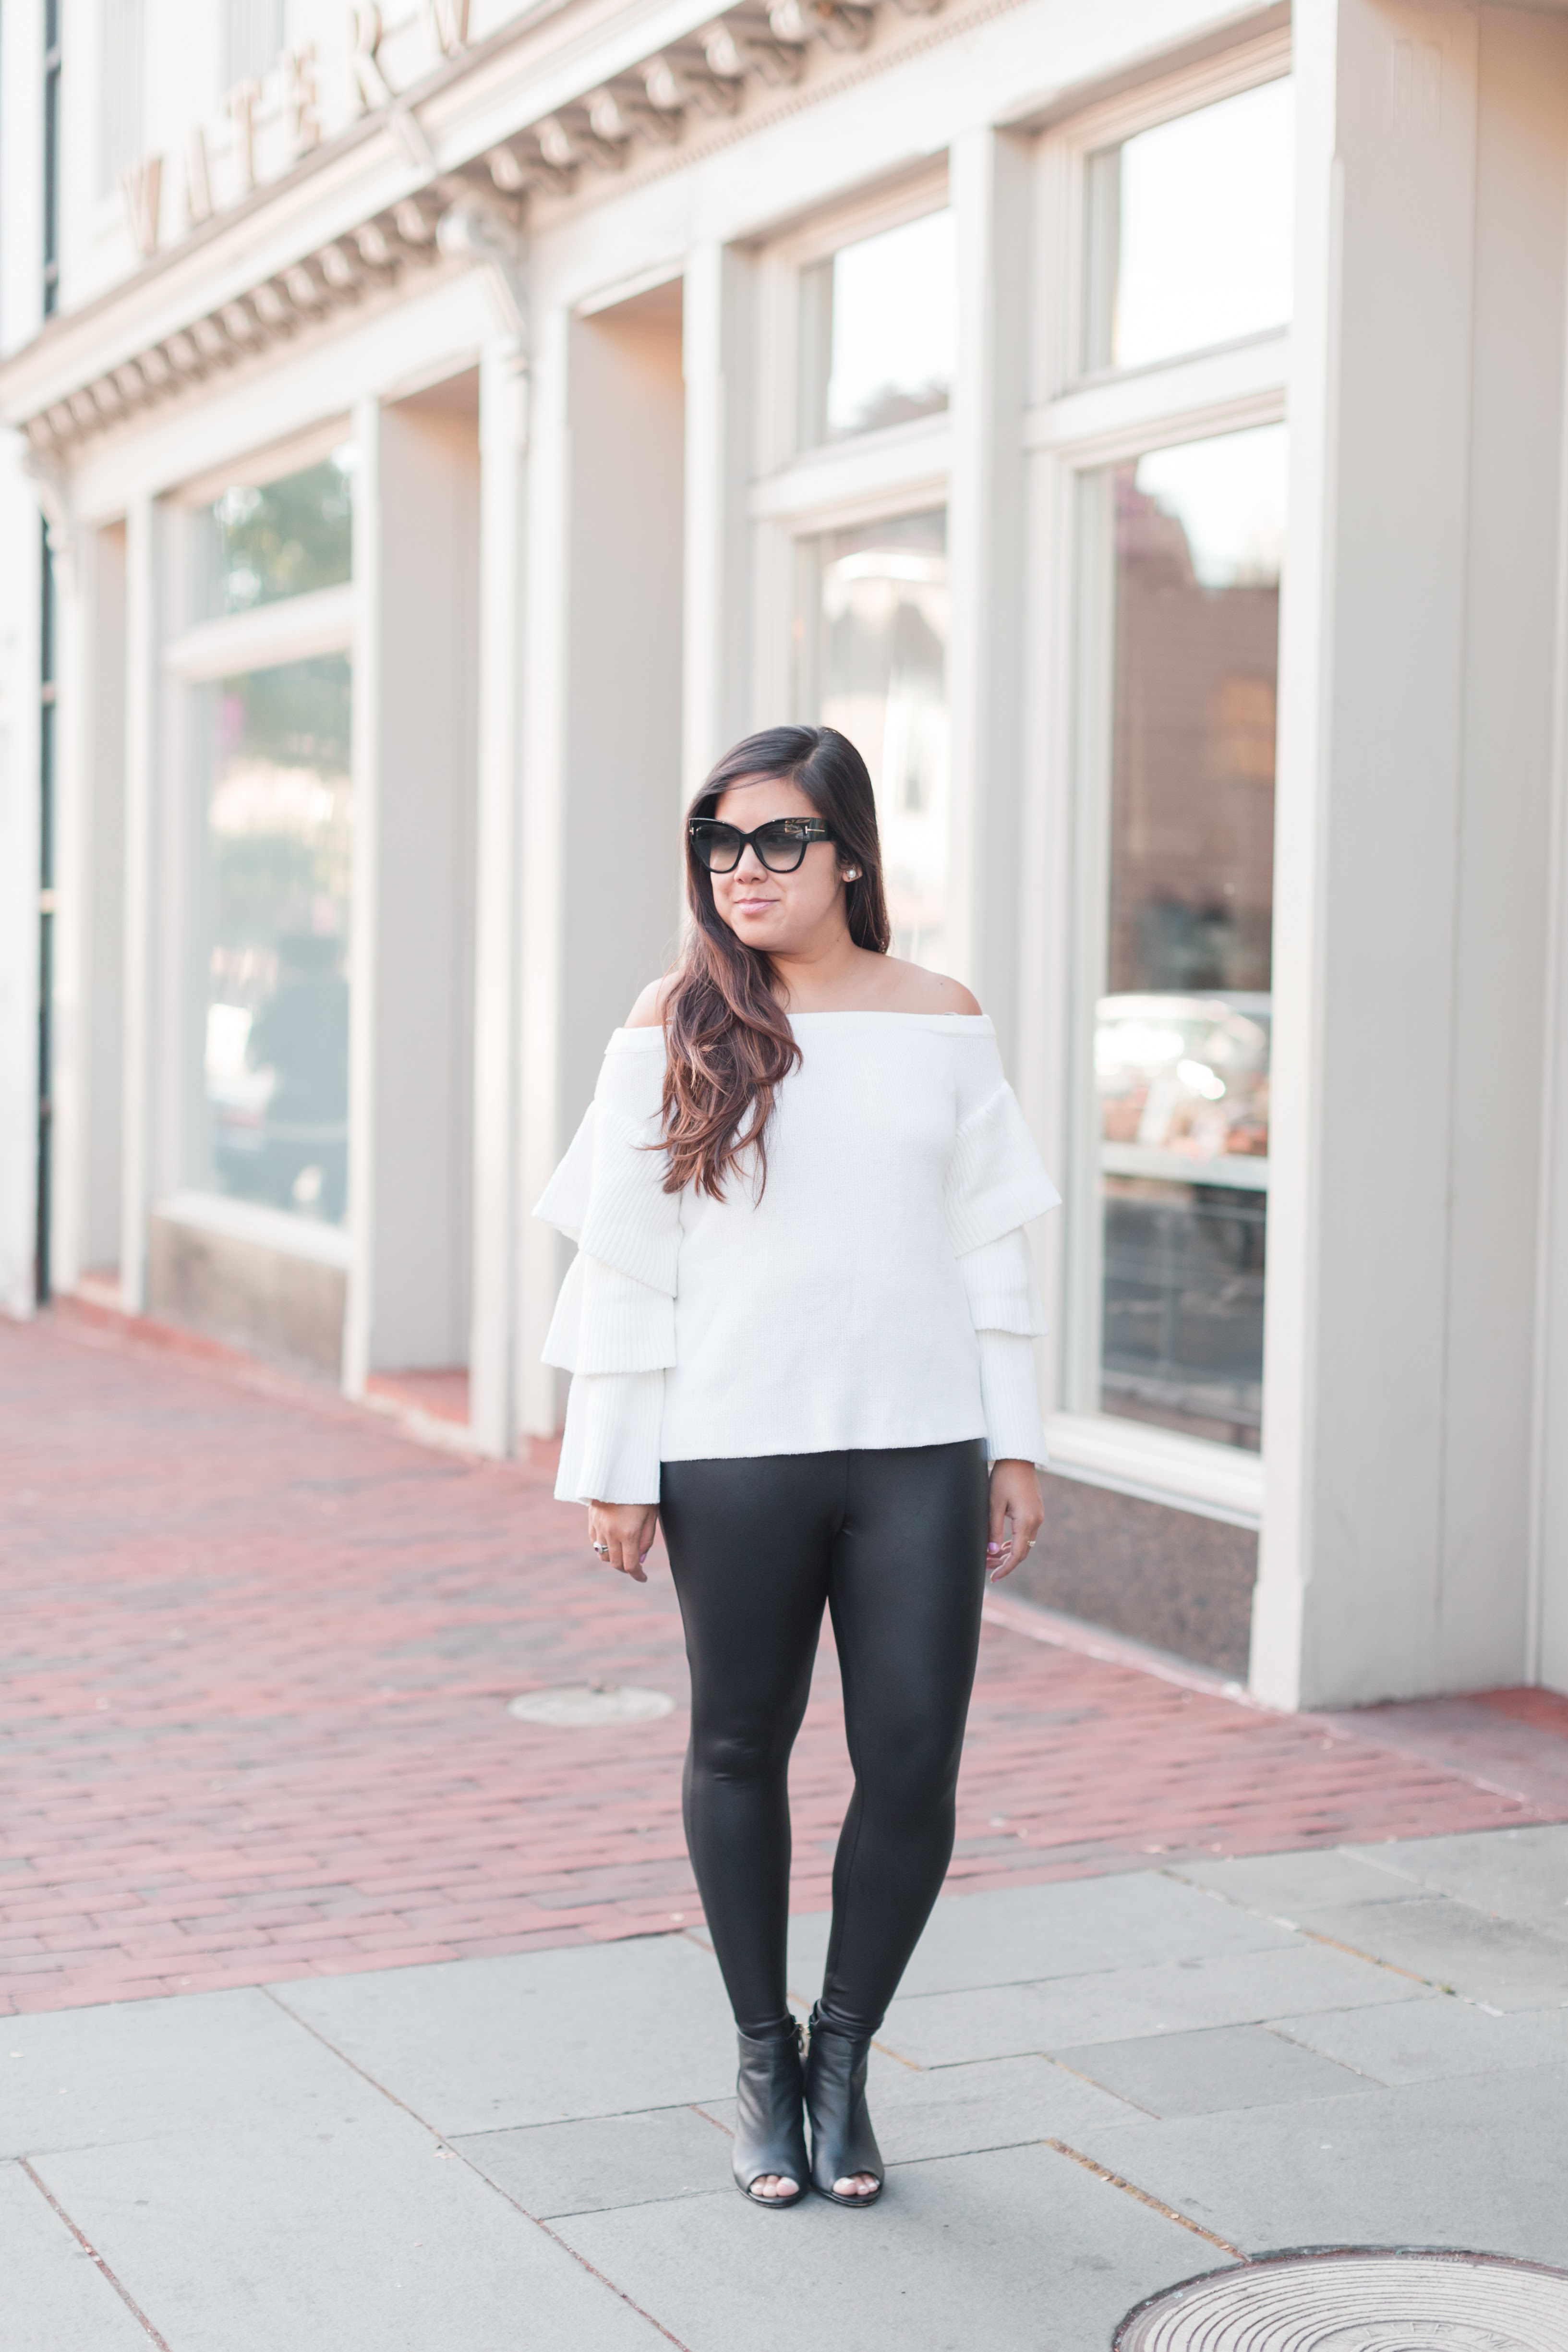 Off The Shoulder Sweater - Stylista Esquire - @stylistaesquire